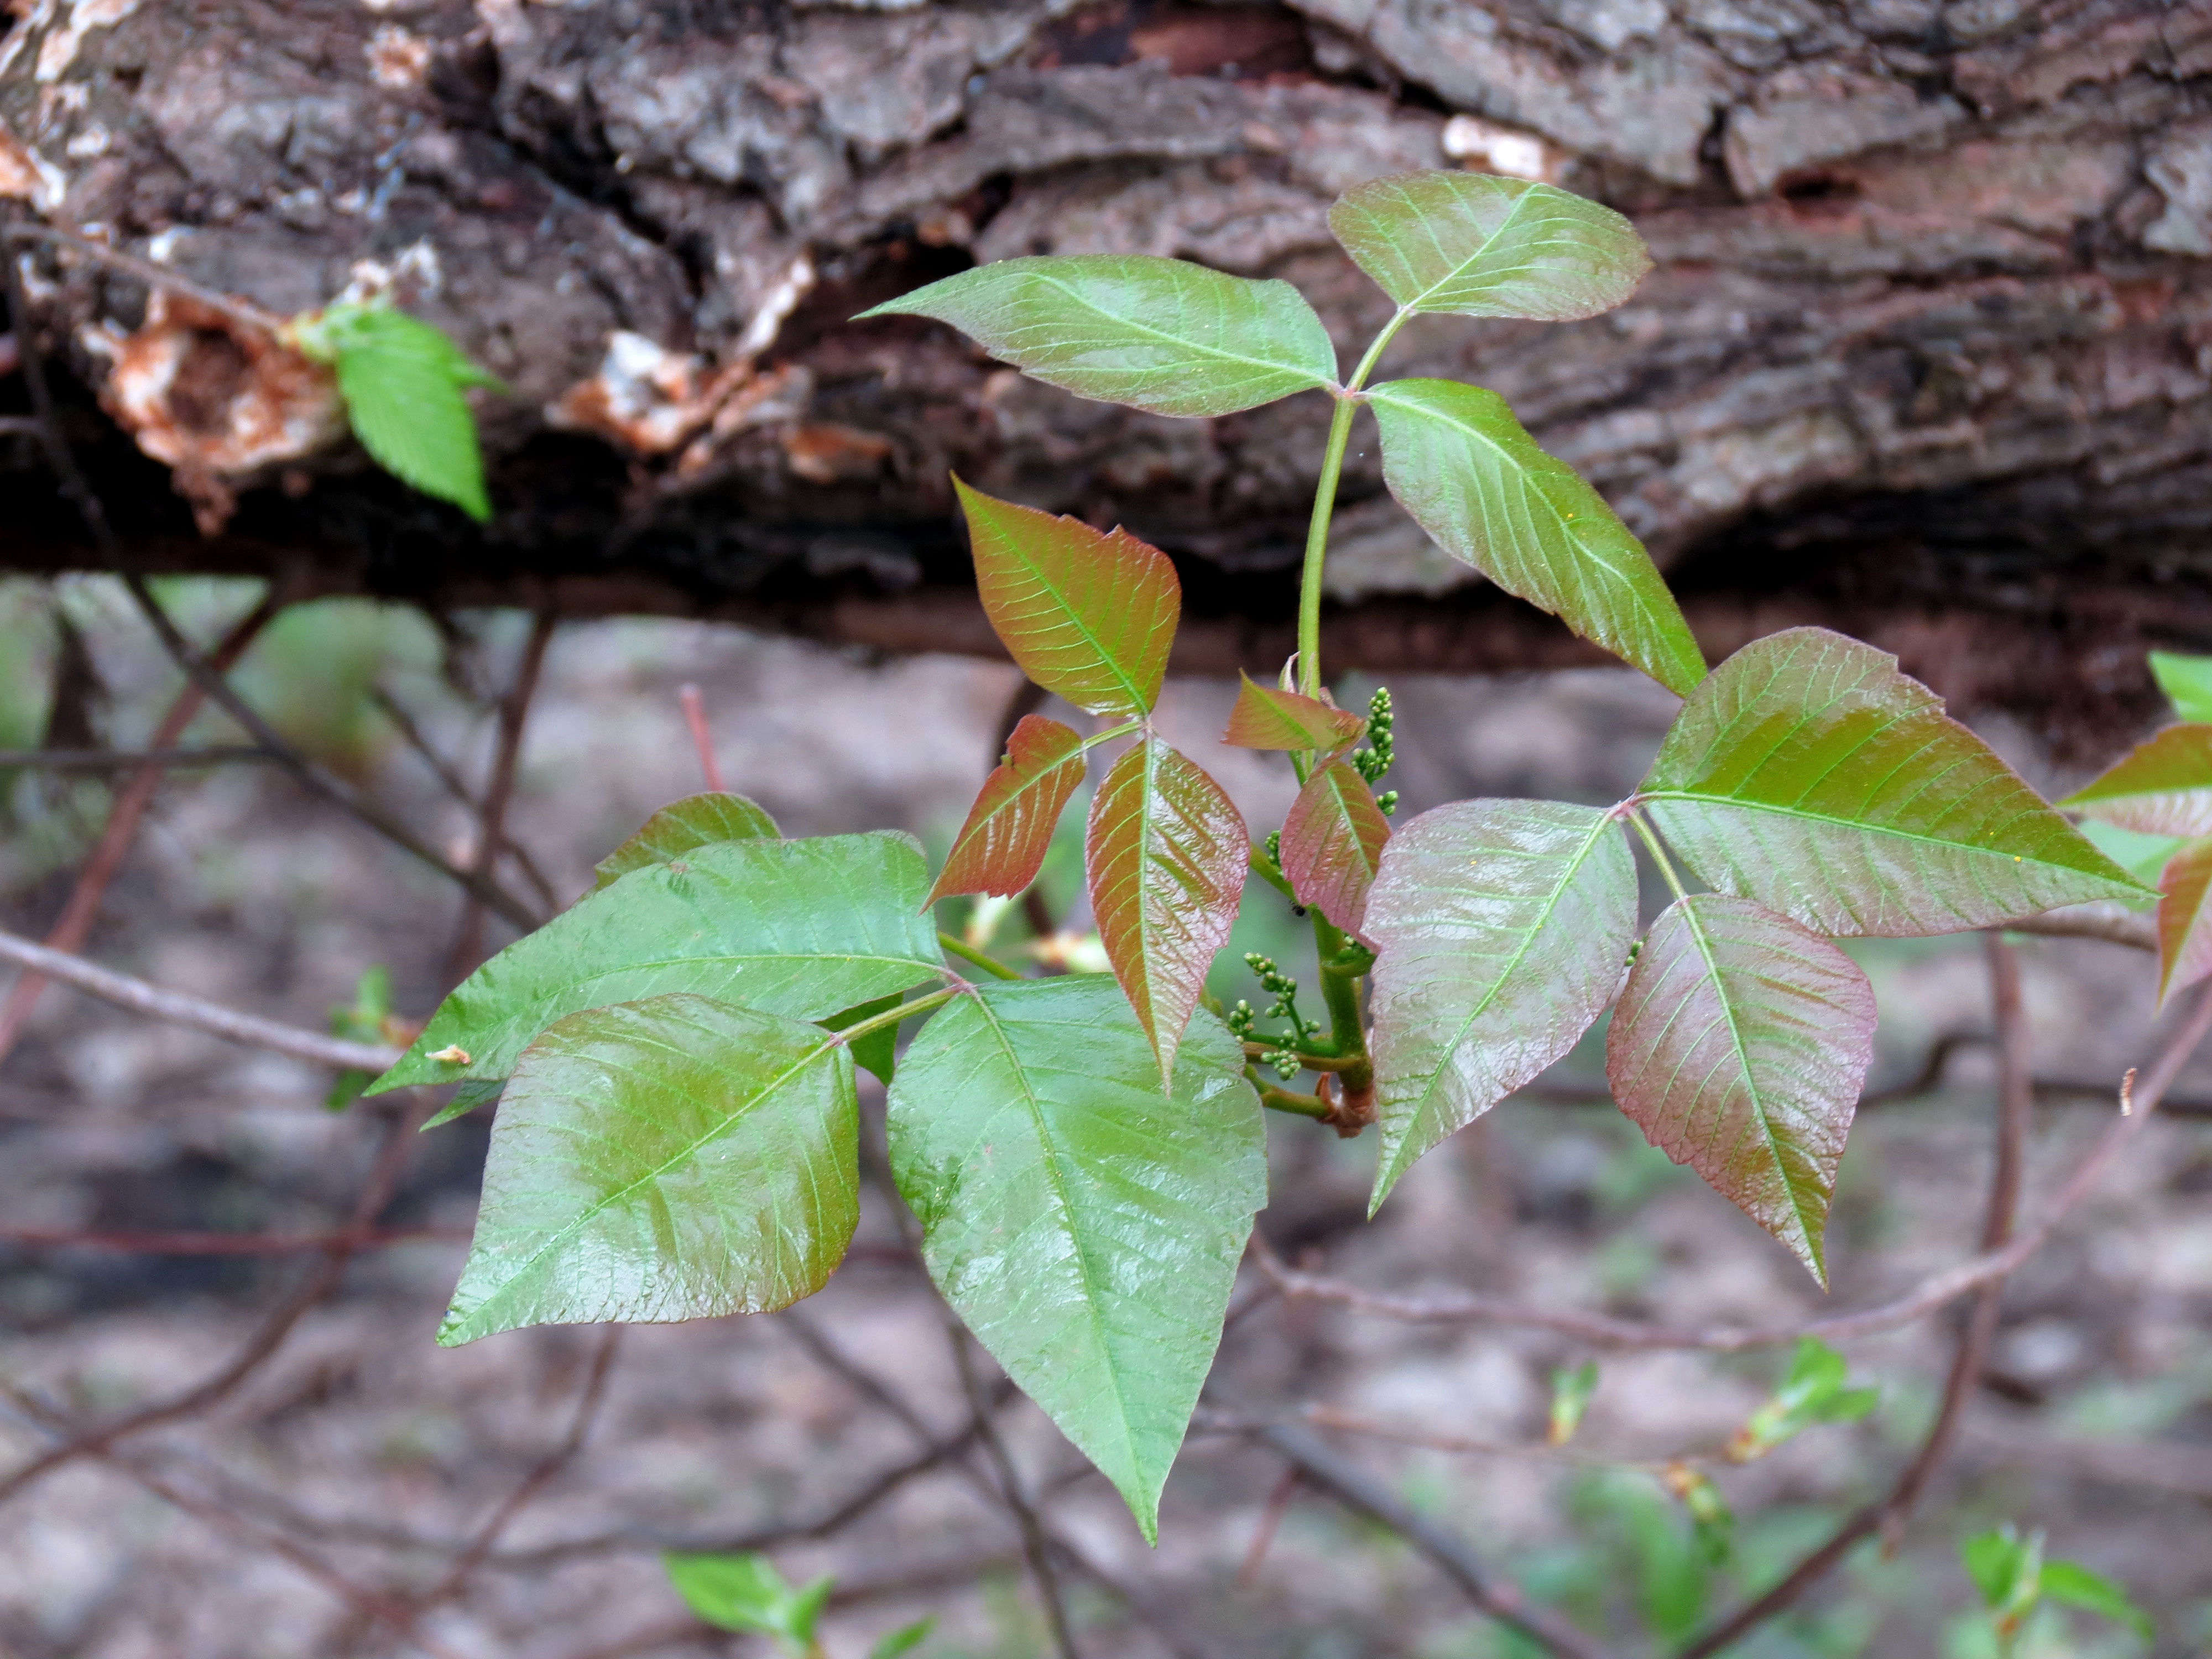 landscaping 101: how to kill poison ivy - gardenista